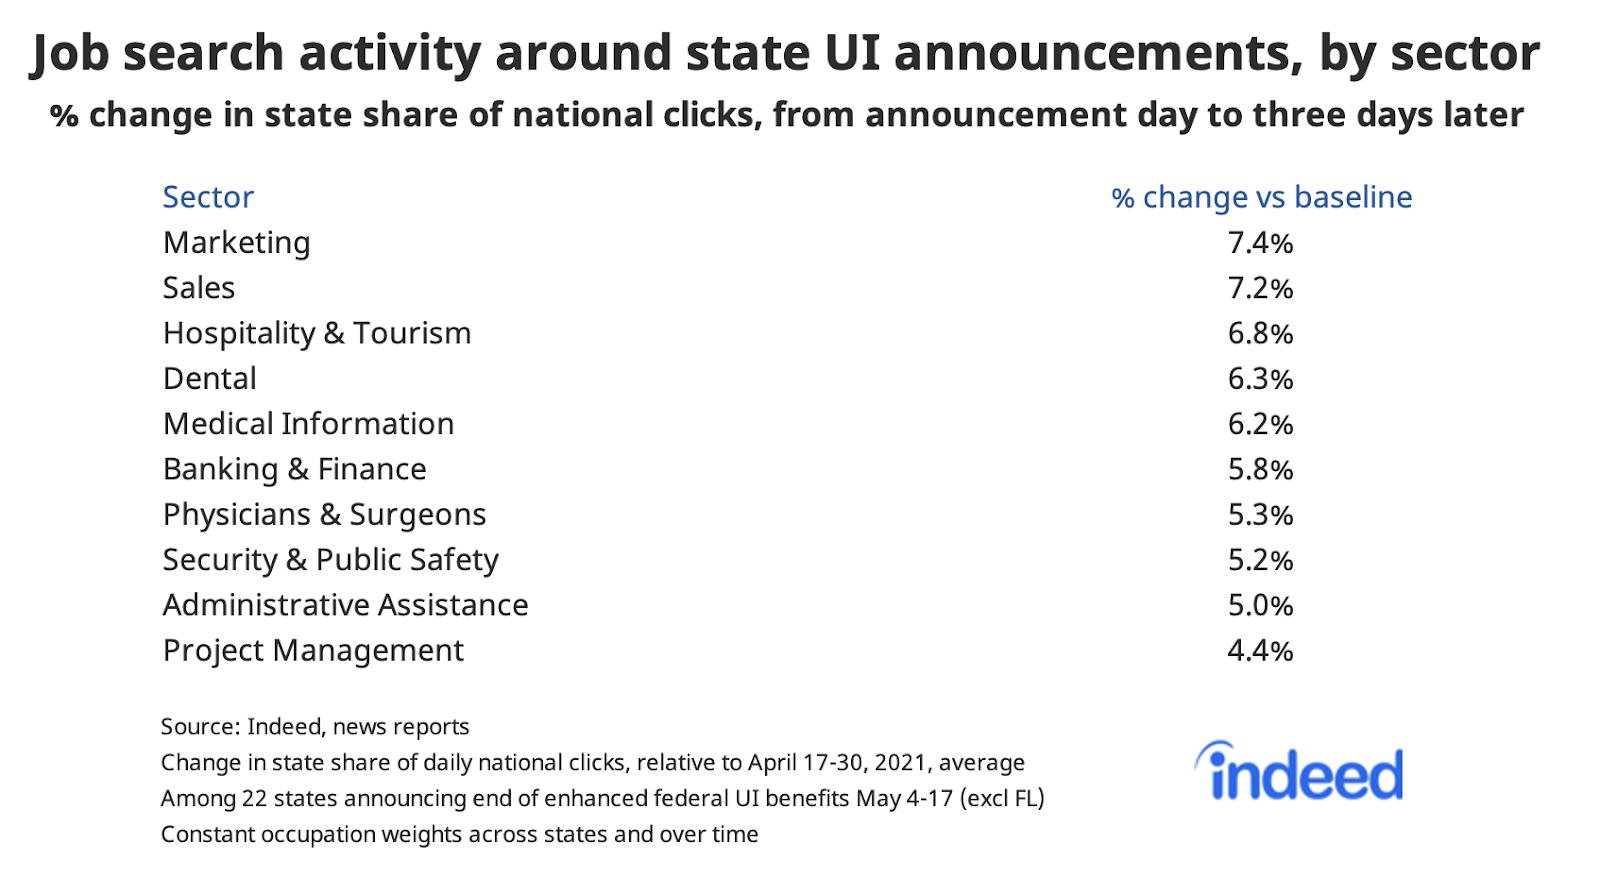 Table showing job search activity around state UI announcements, by sector